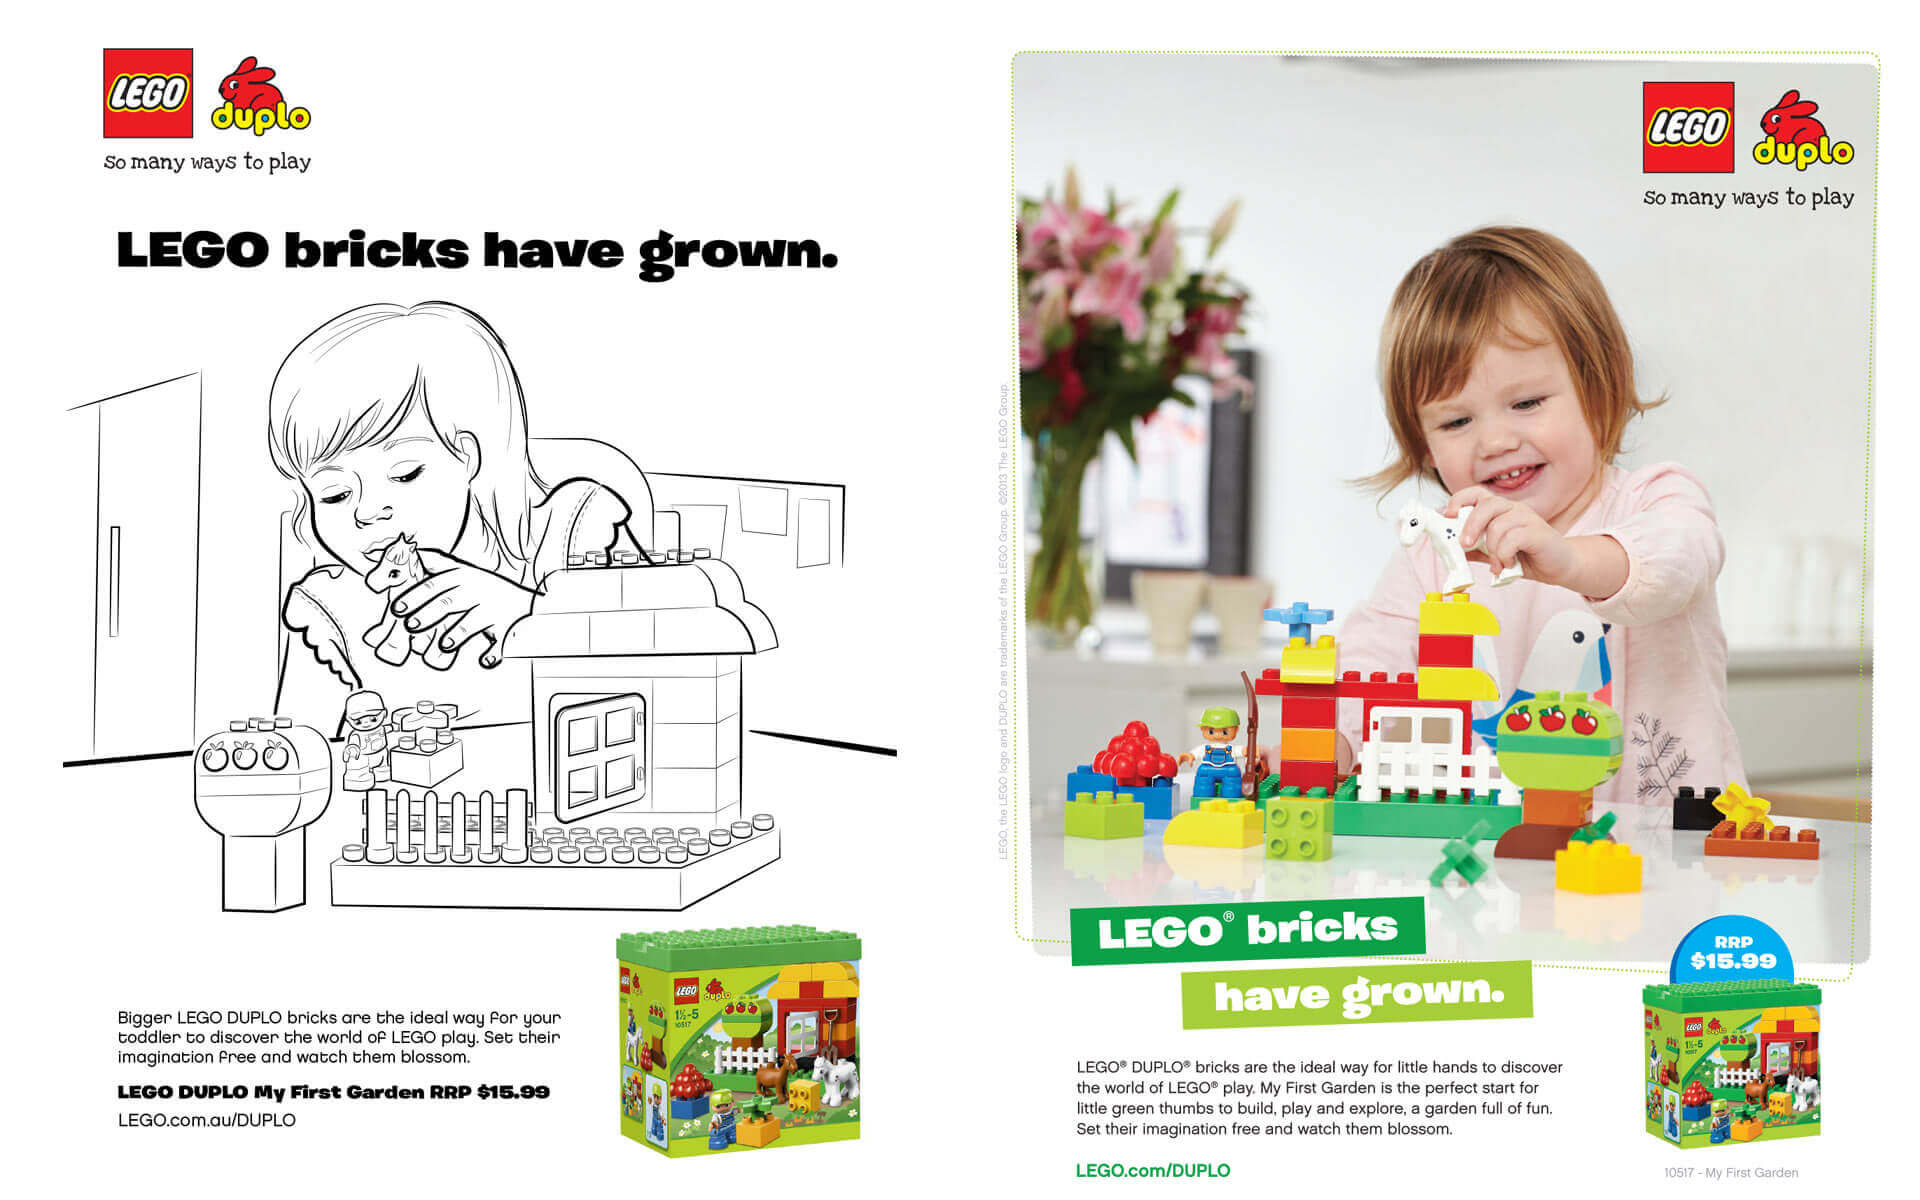 LEGO Duplo 'LEGO Bricks Have Grown' magazine ad and scamp.